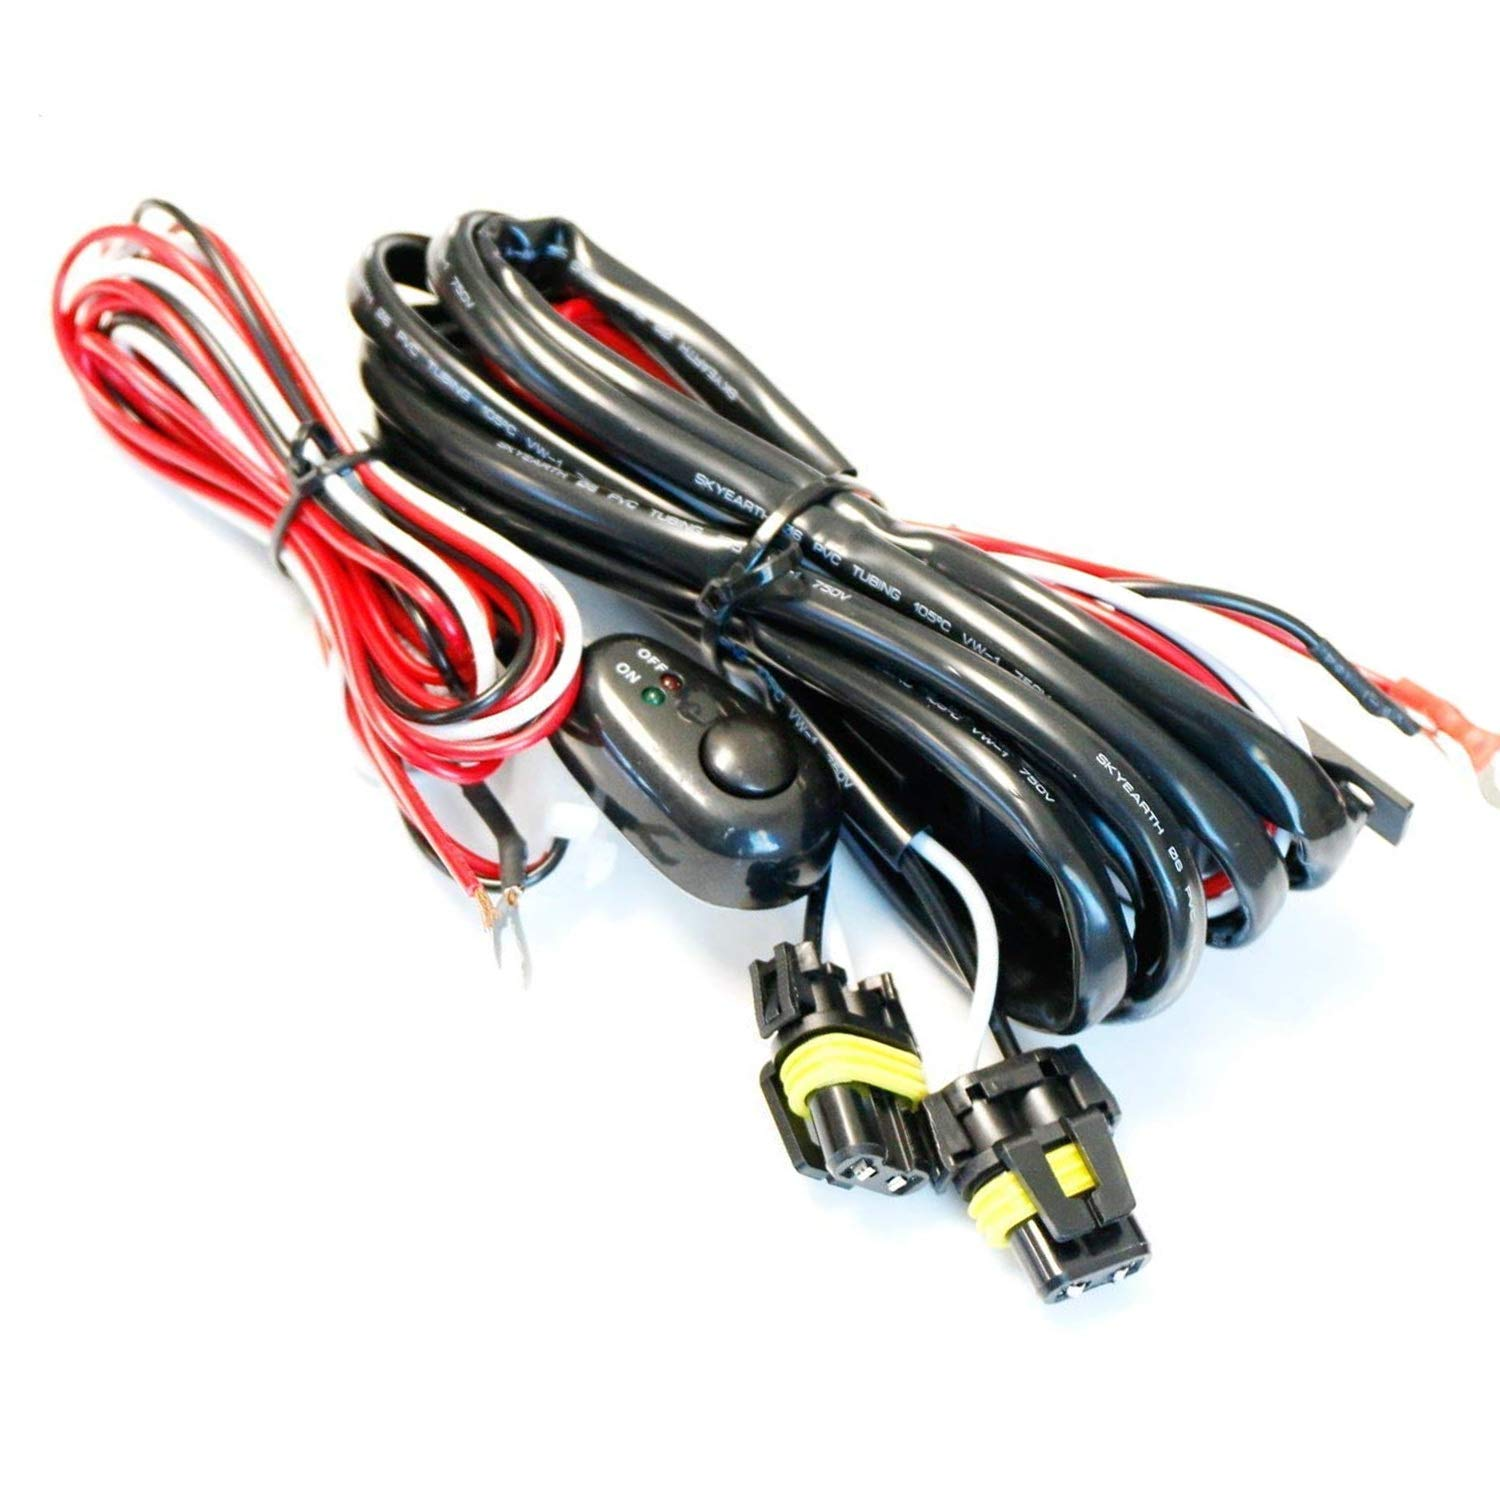 Ijdmtoy 1 9005 9006 H10 Relay Harness Wire Kit With Dodge Challenger Wiring On 1967 Chrysler 300 Led Light Off Switch For Aftermarket Fog Lights Driving Hid Conversion